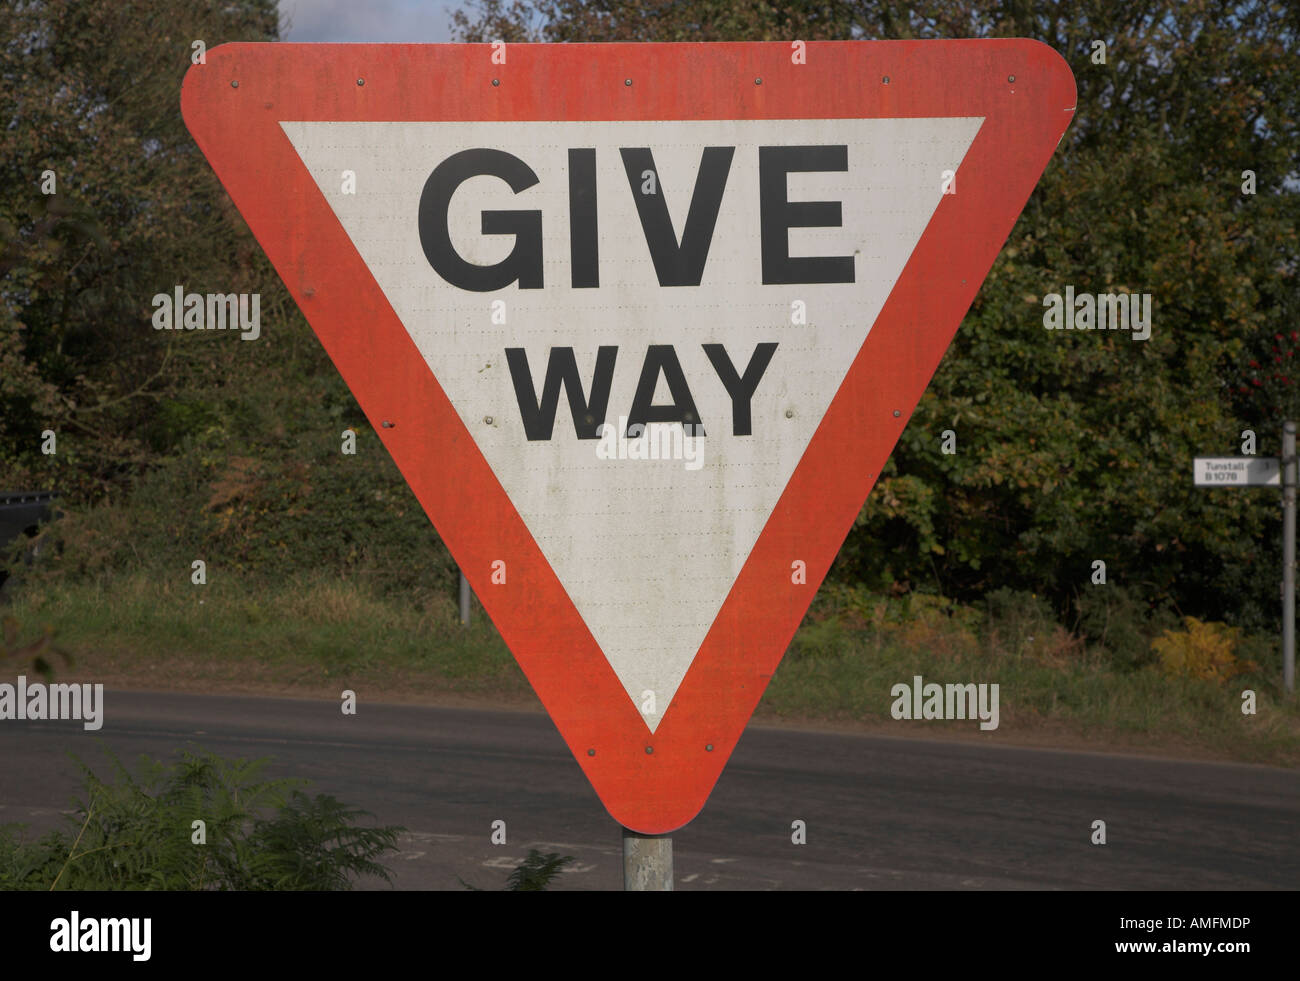 Triangular Give Way road sign - Stock Image